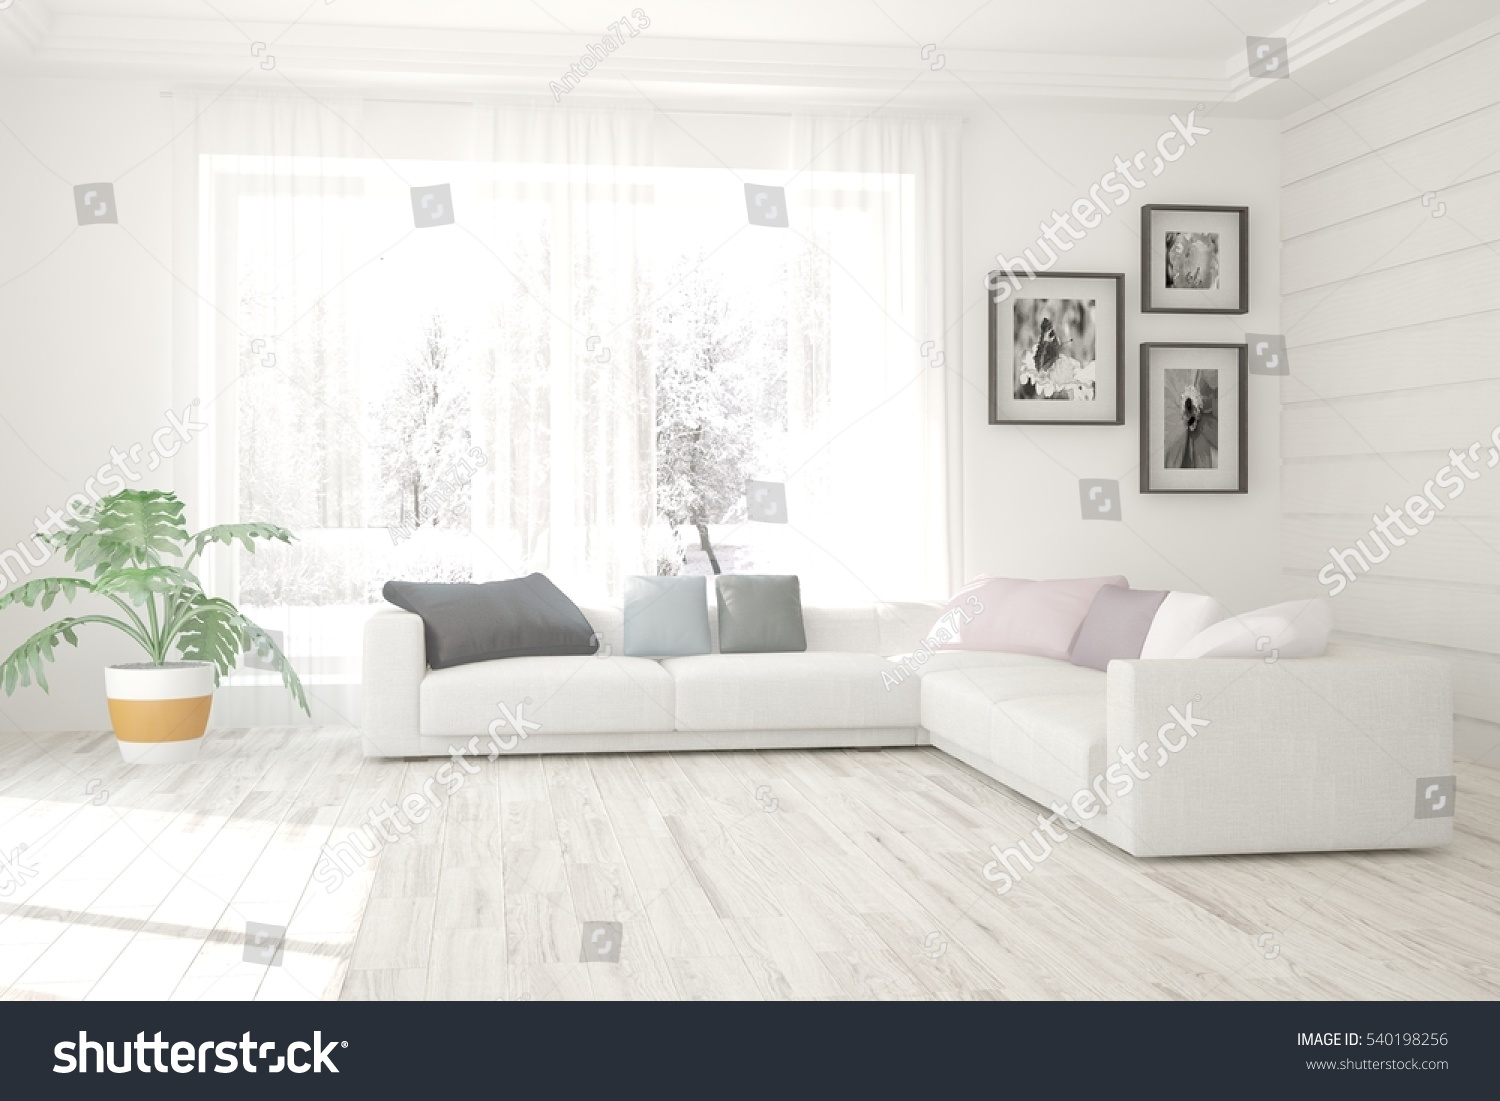 White living room interior sofa winter stock illustration for 3d interior design of living room